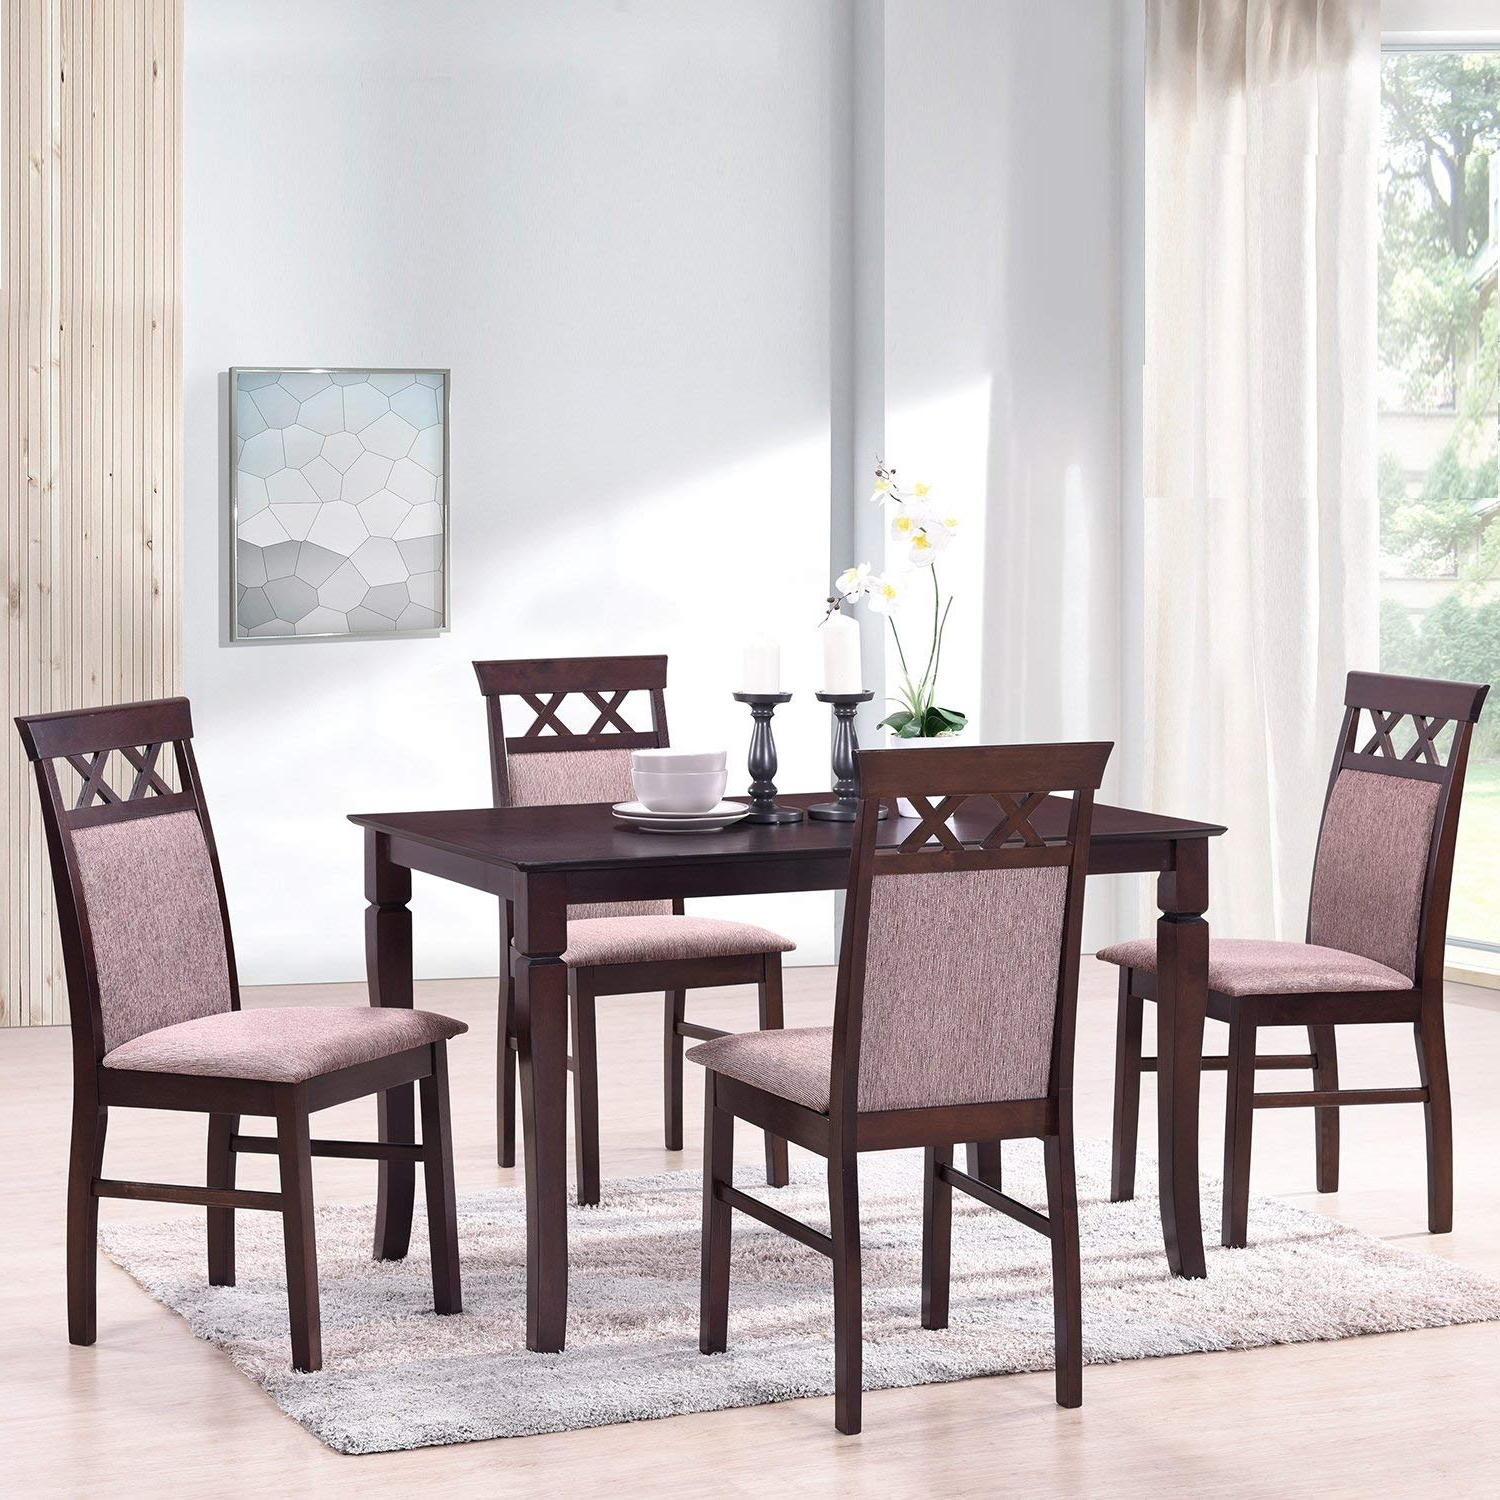 Favorite Harper 5 Piece Counter Sets In Amazon: Merax Harper&bright Designs 5 Piece Dining Set Rubber (View 17 of 25)